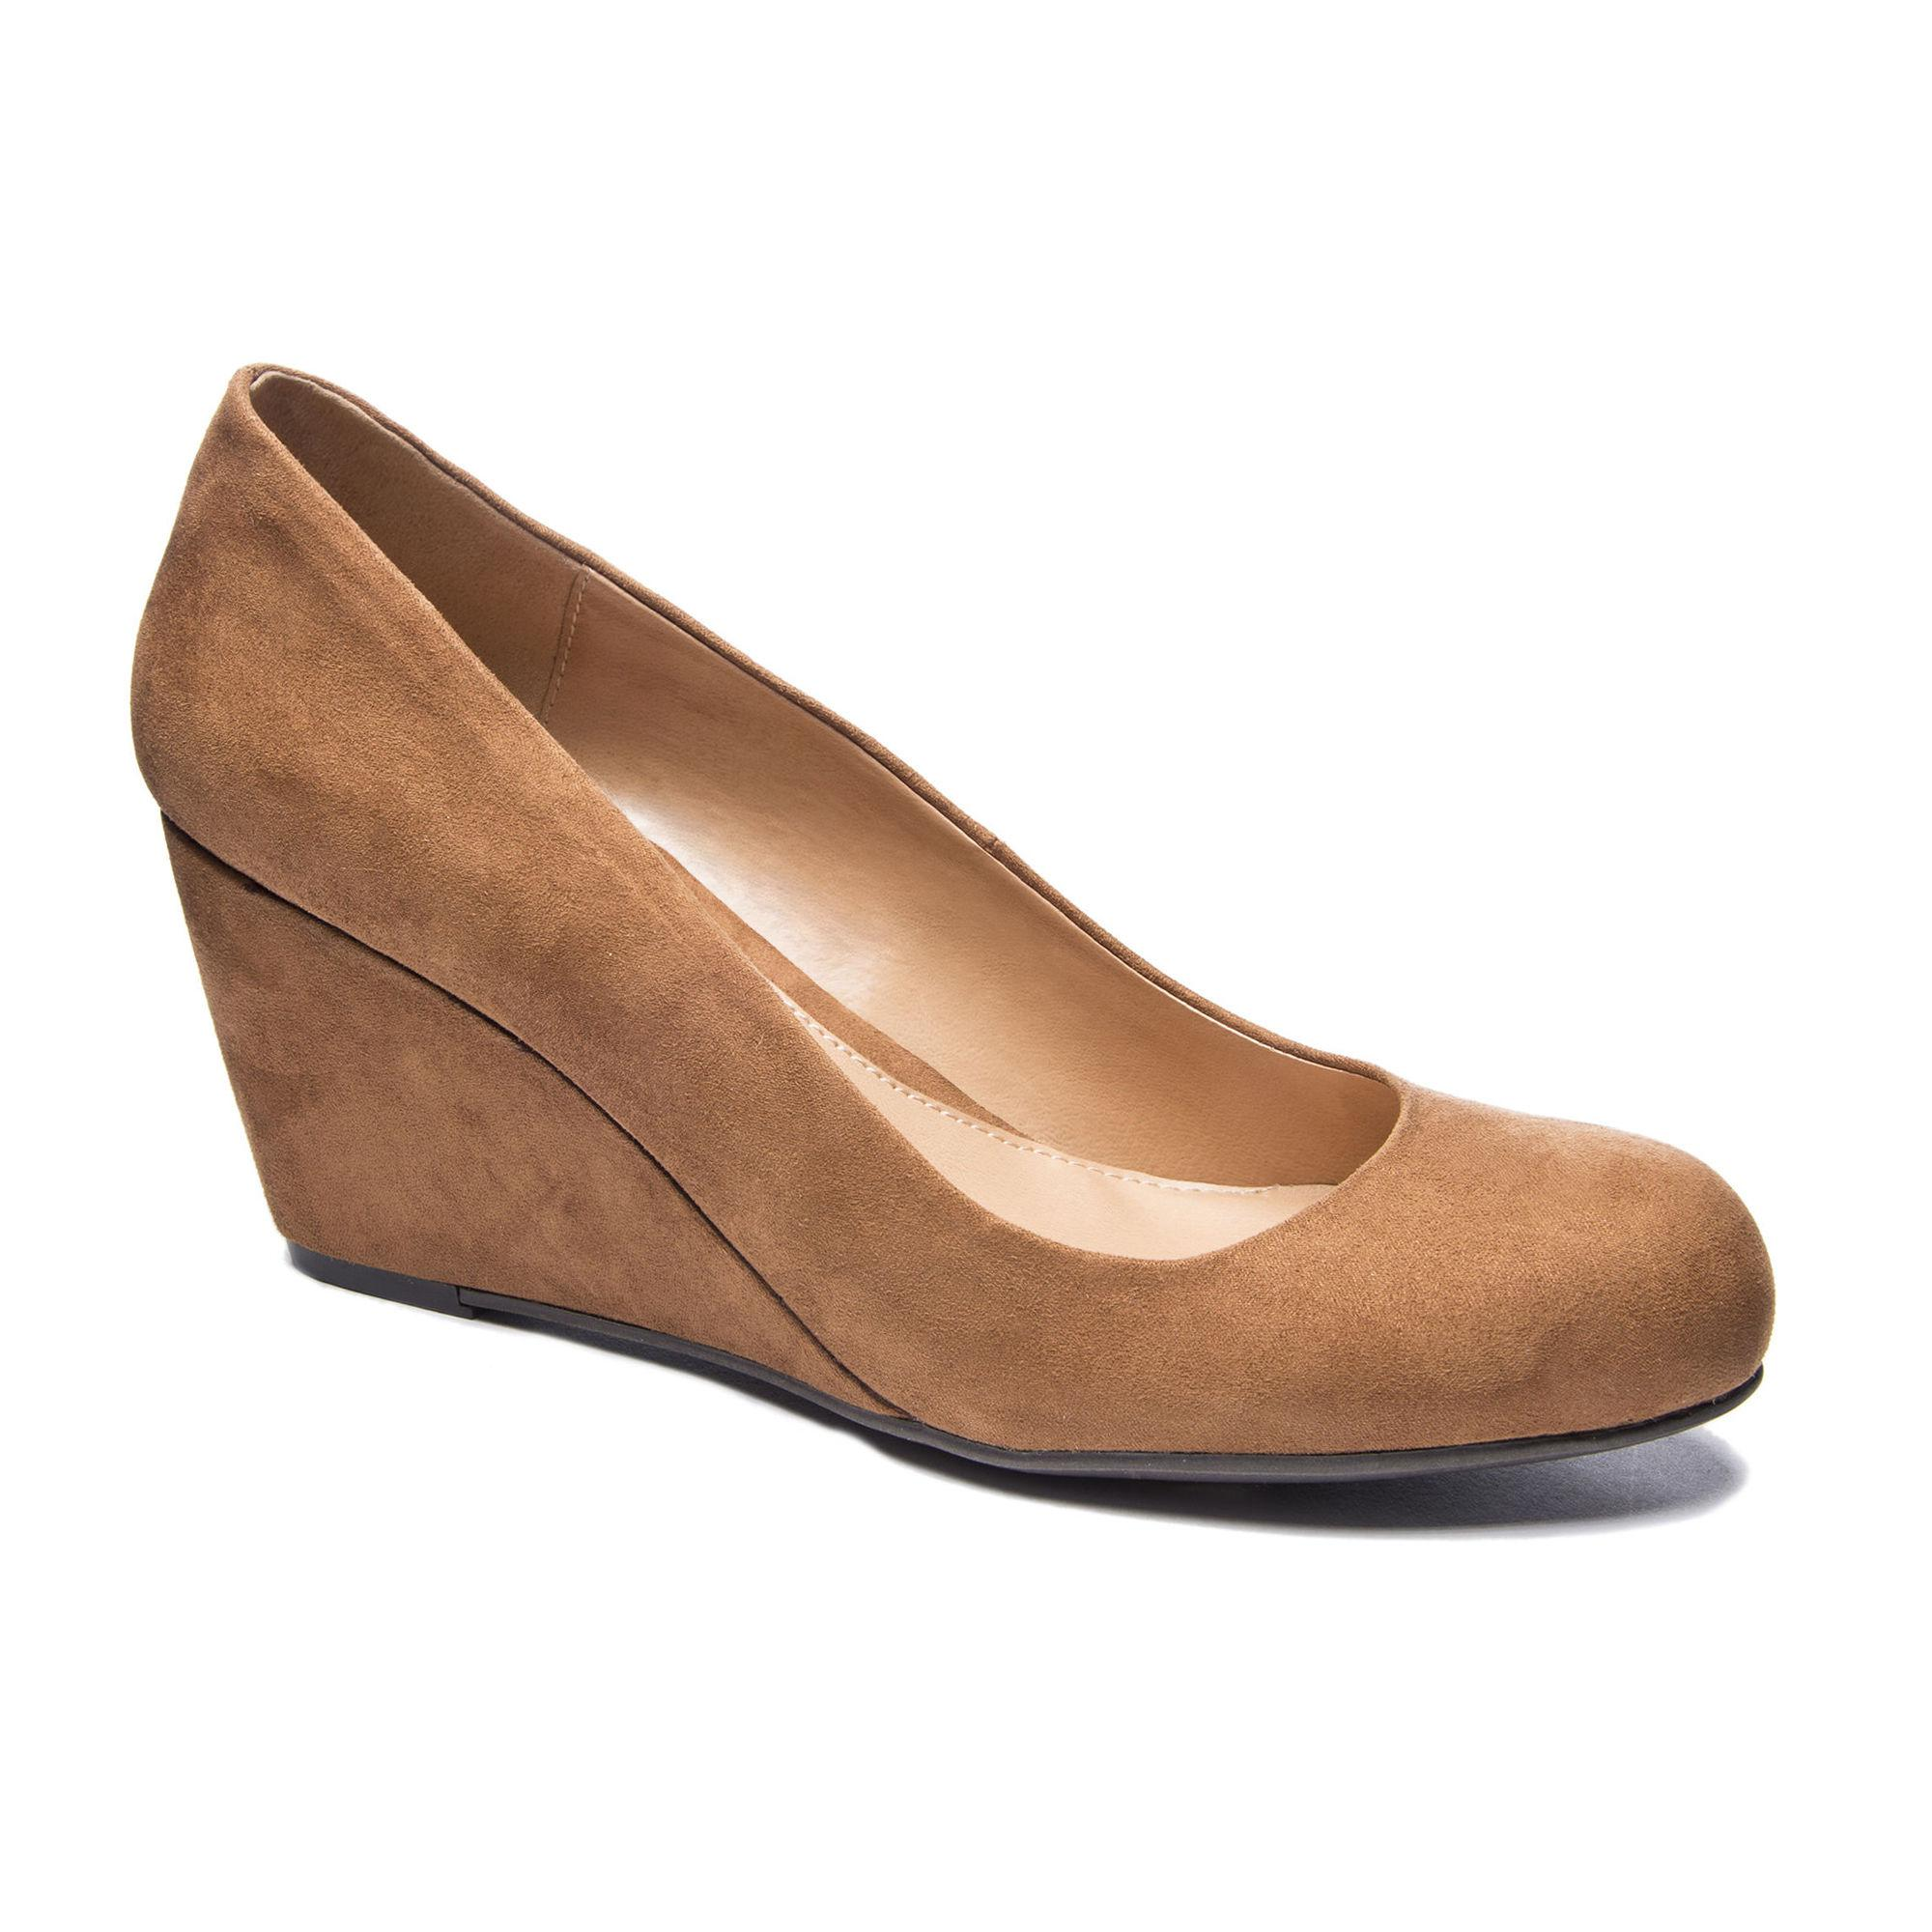 07af1f45923 Lyst - Chinese Laundry Nima Wedge Pump in Brown